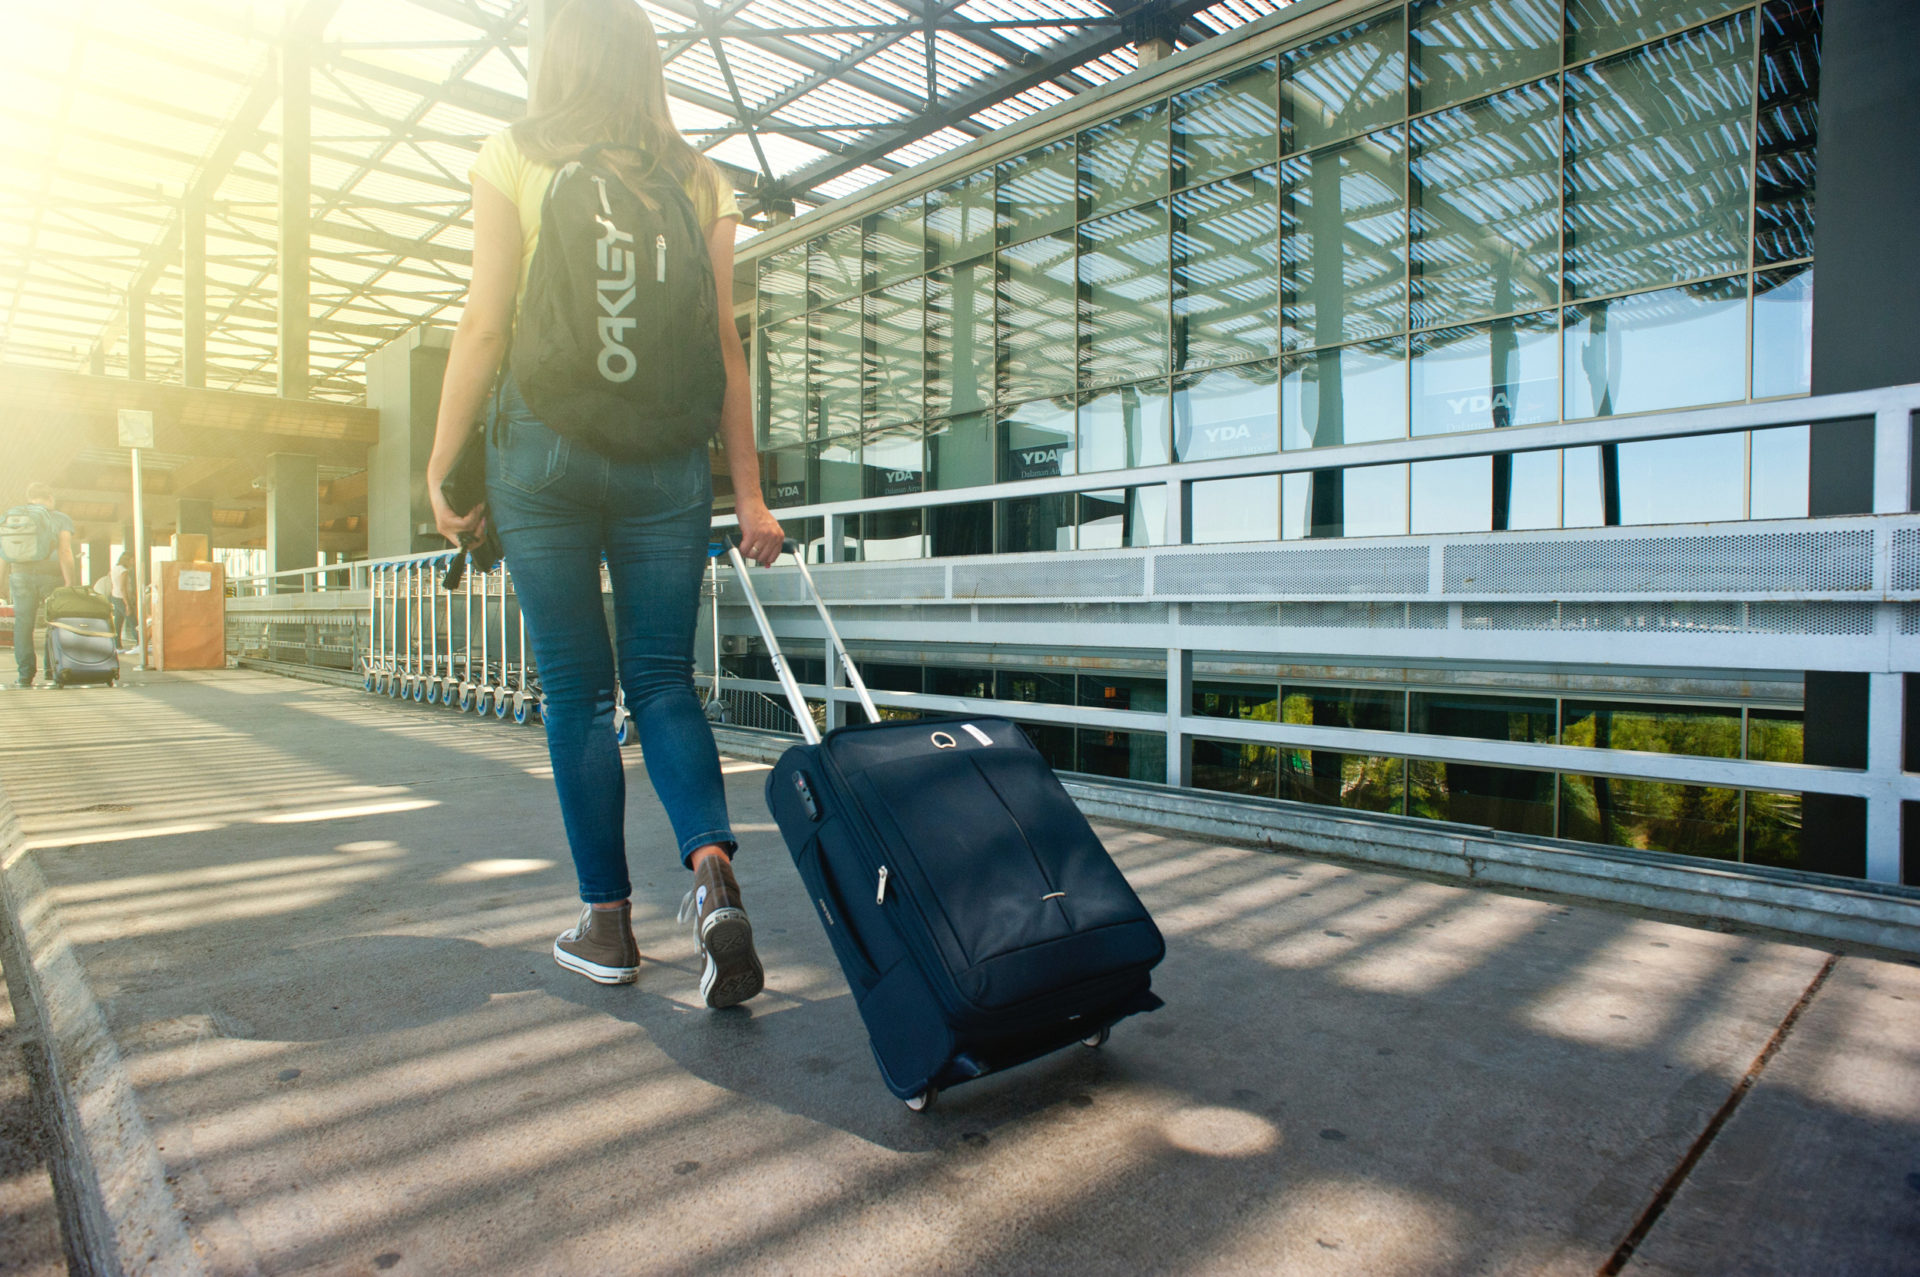 Girl with Traveling Bag on Airport